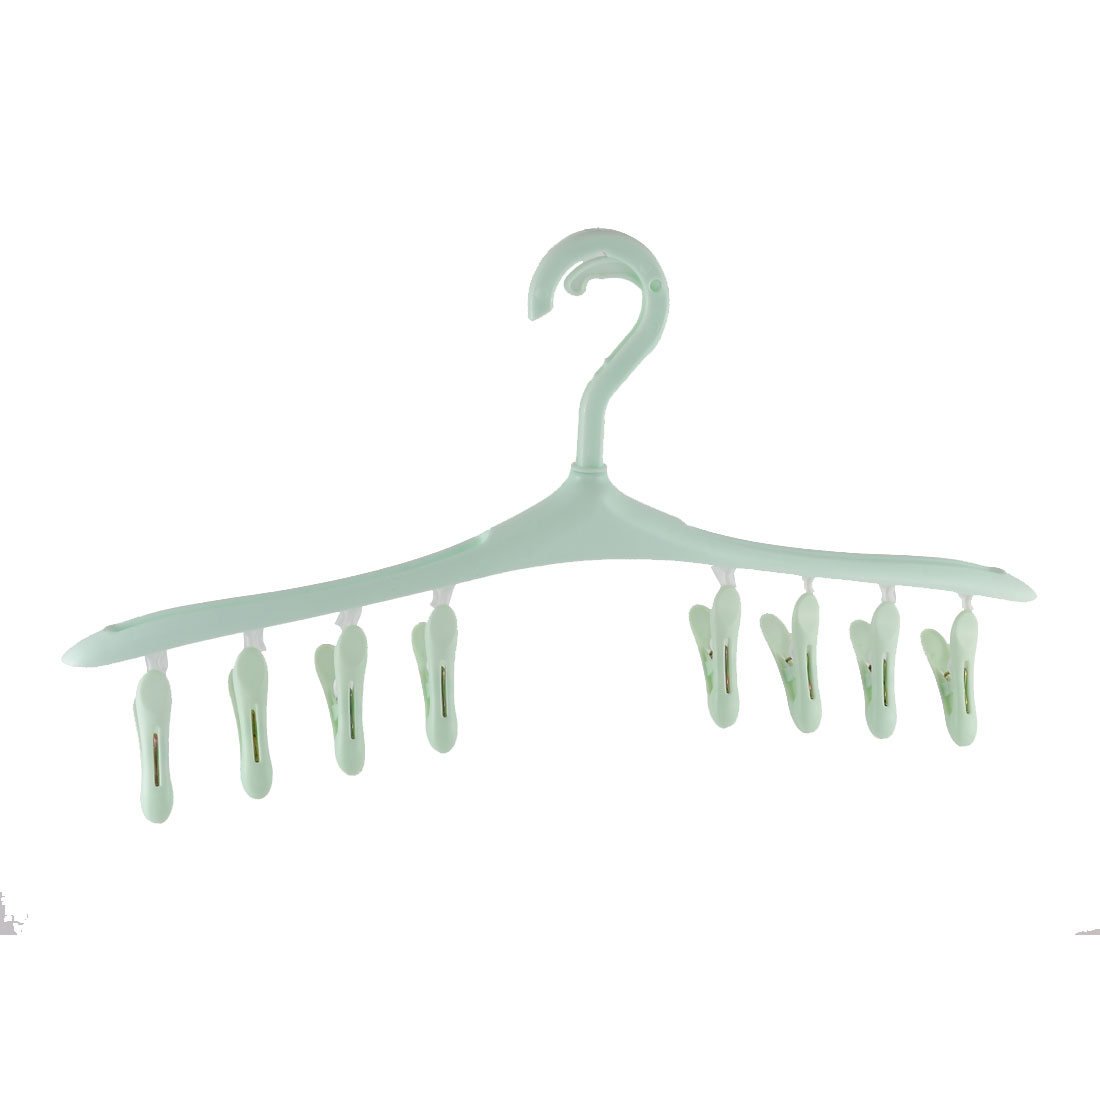 Household Plastic Laundry Drying Clips Clamps Clotheshorse Hanger Light Green